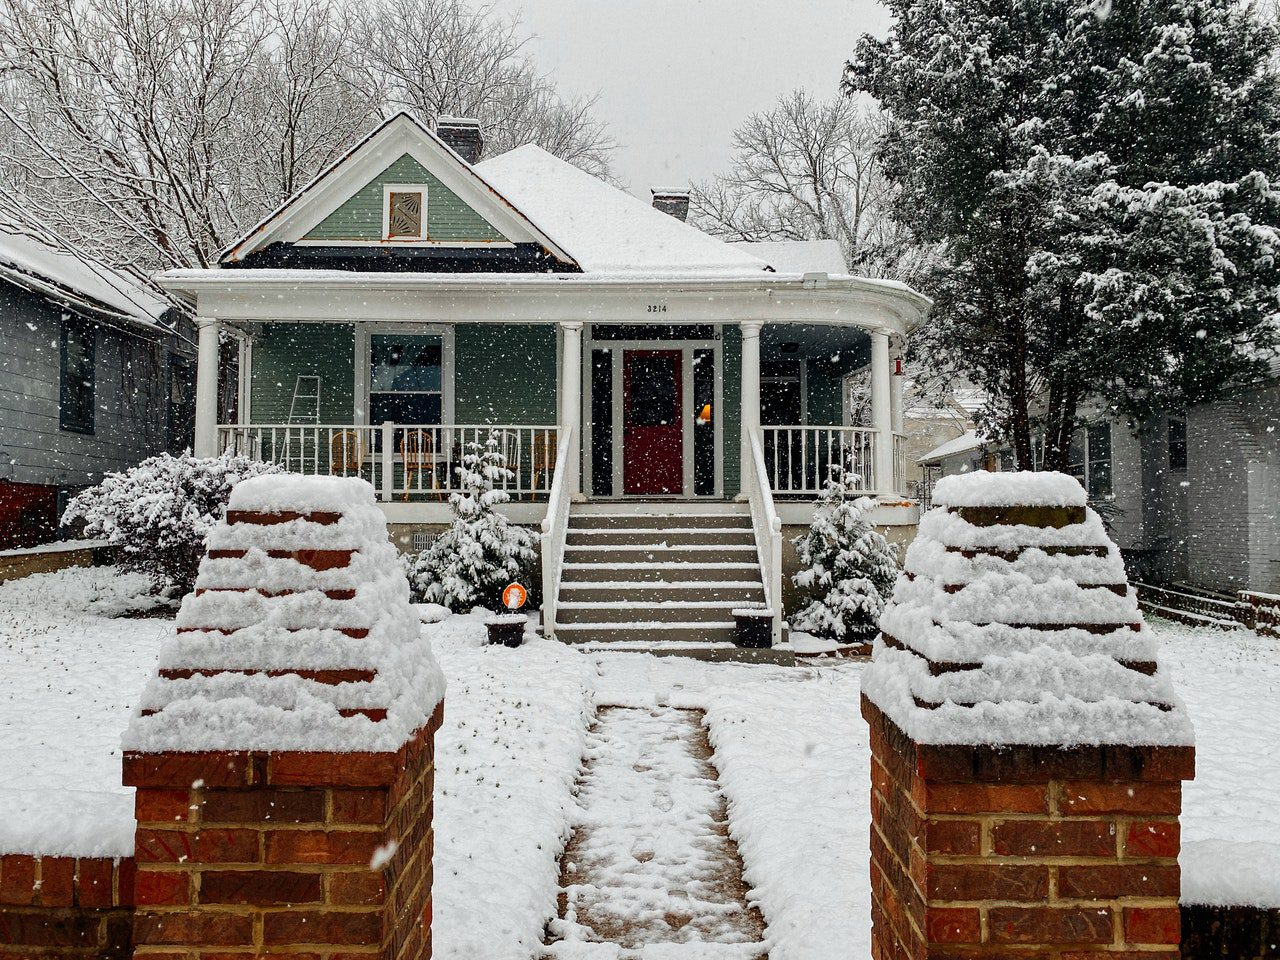 Home covered in snow in the winter